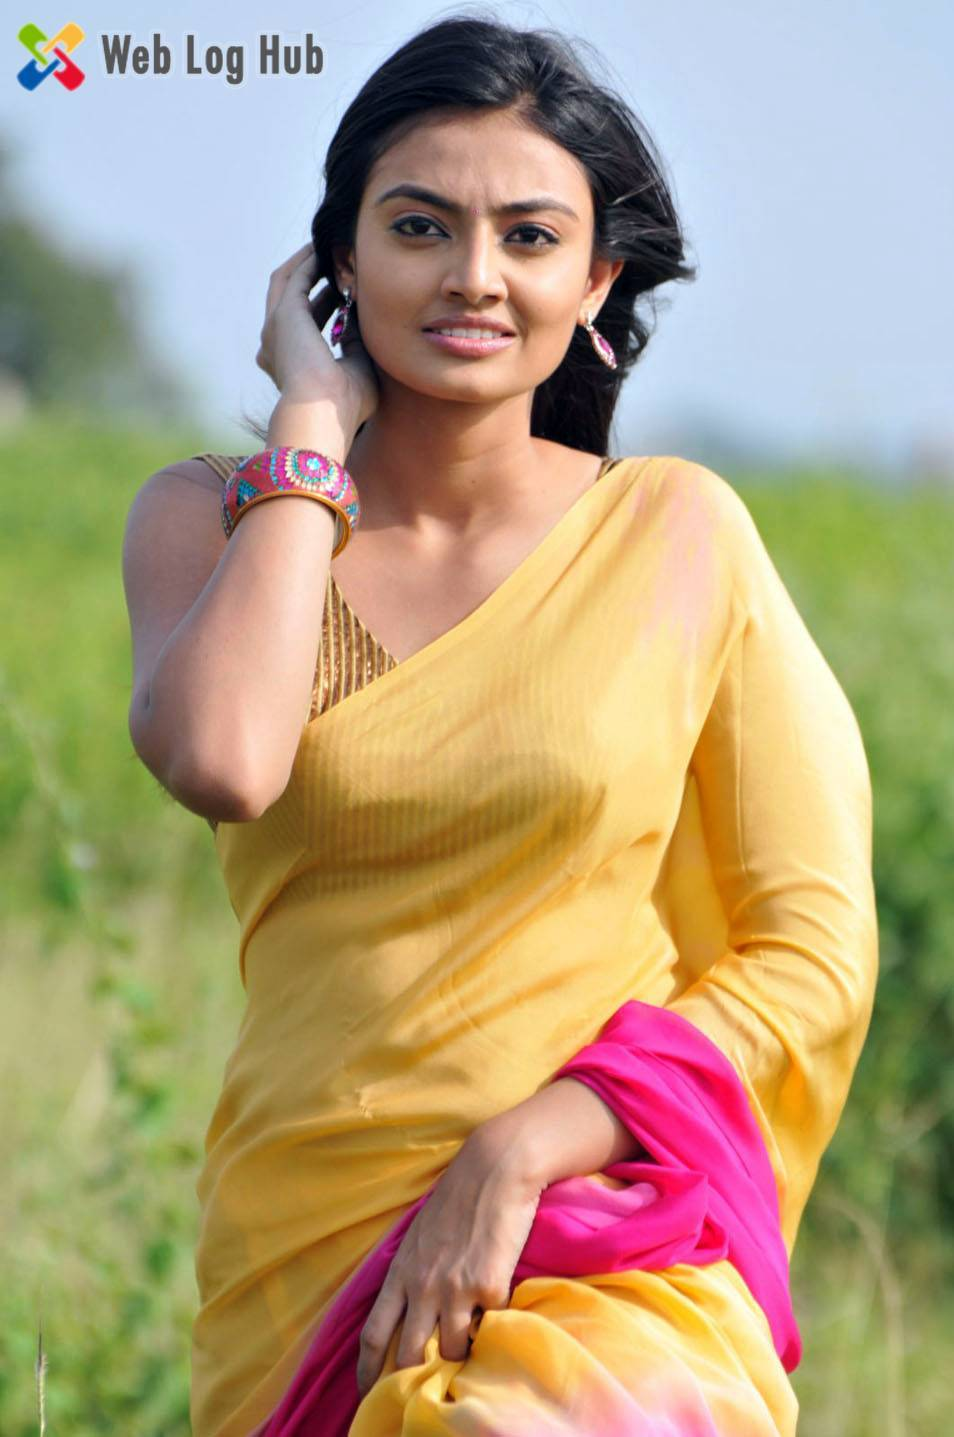 Slim Actress Nikitha Narayan Hot Photo Still in Transparent Yellow Saree - Web Log Hub